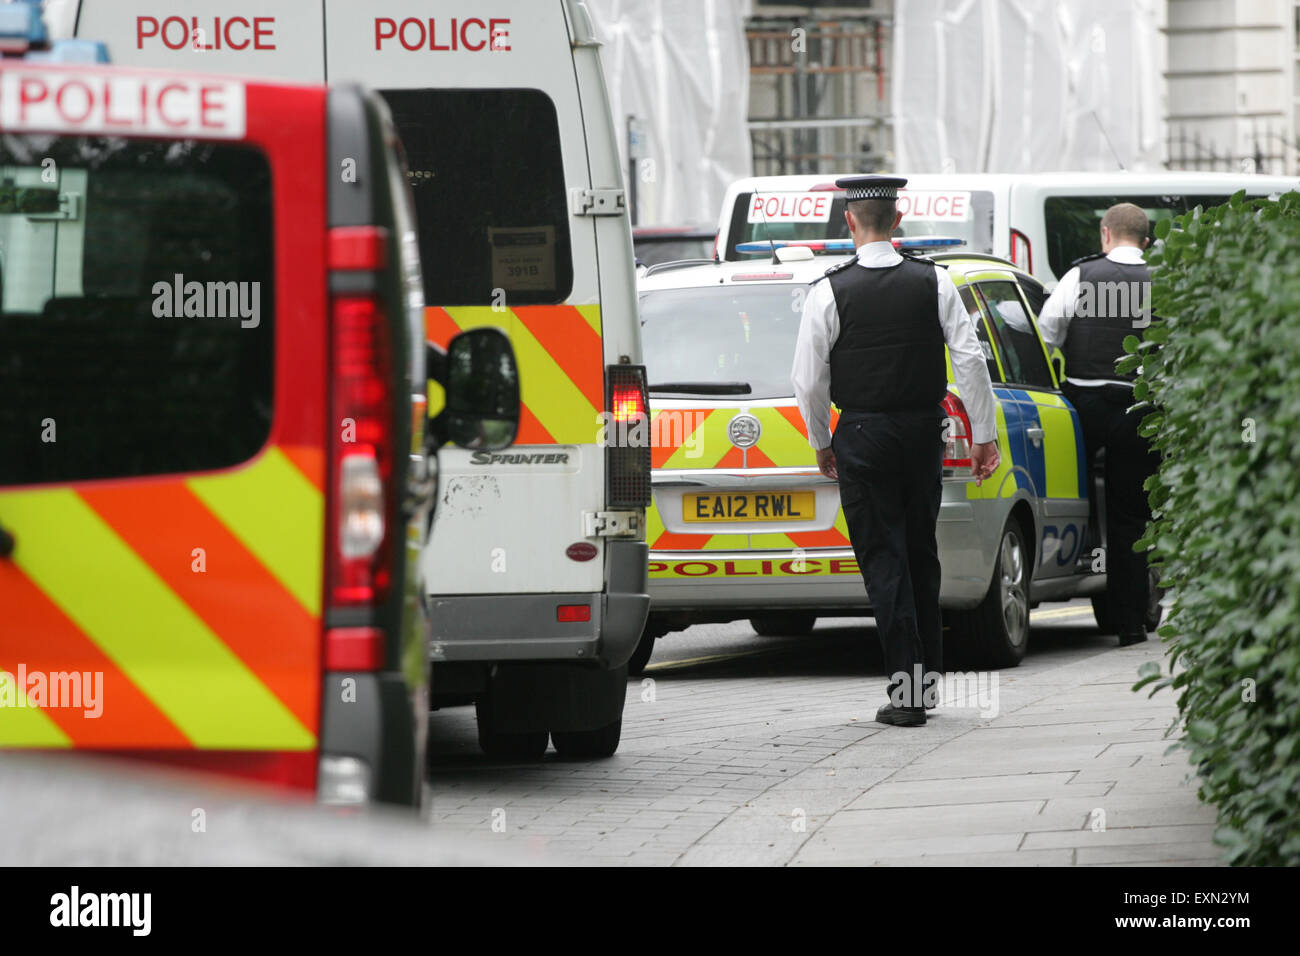 London, UK. 15th July, 2015. Police vehicles lined up outside the US Embassy  in W1A earlier today. Barriers were Stock Photo